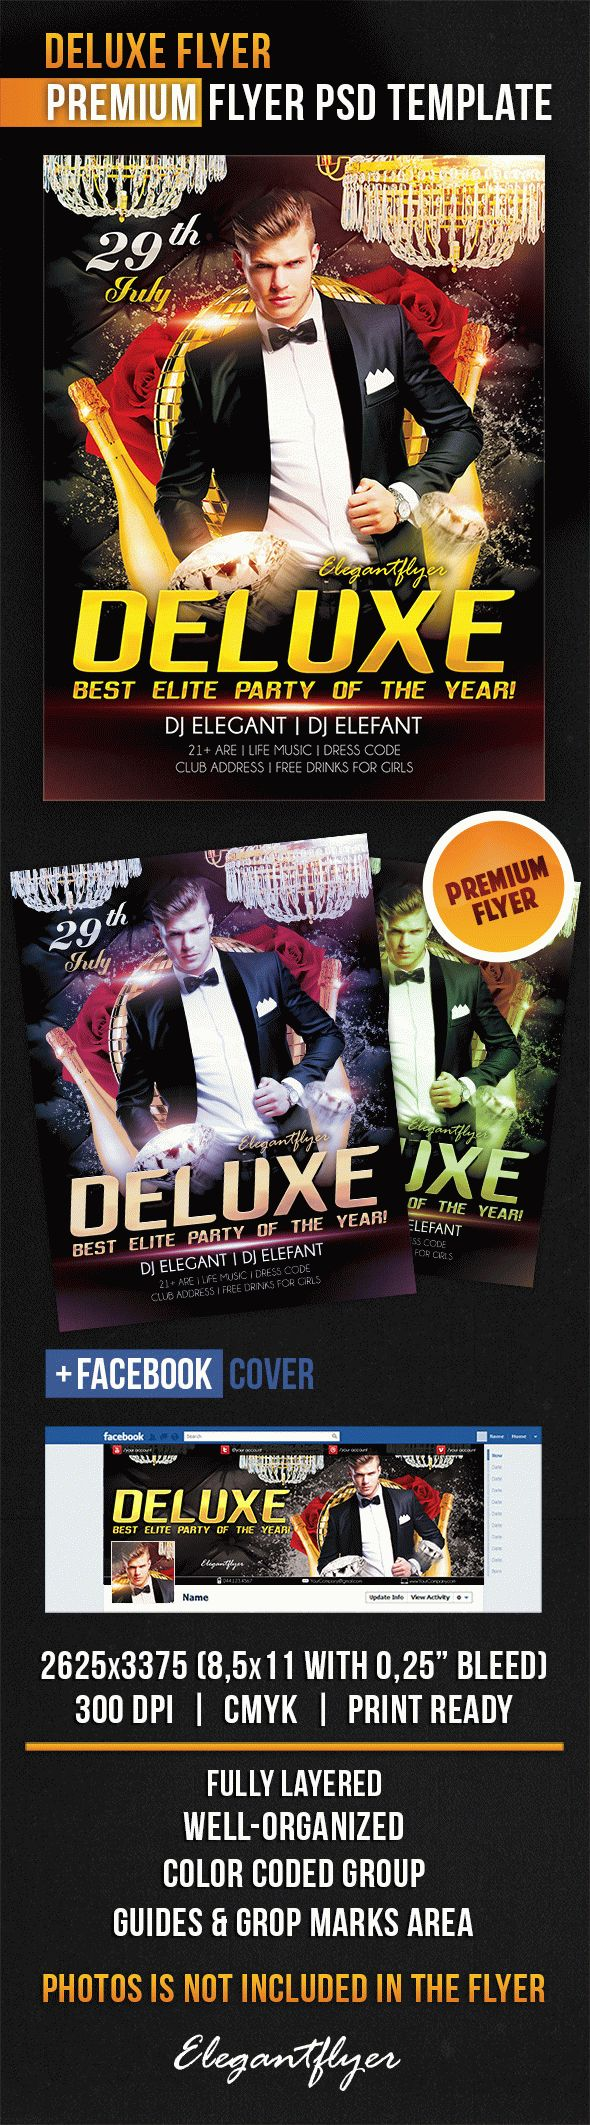 Deluxe Flyer – Flyer PSD Template + Facebook Cover